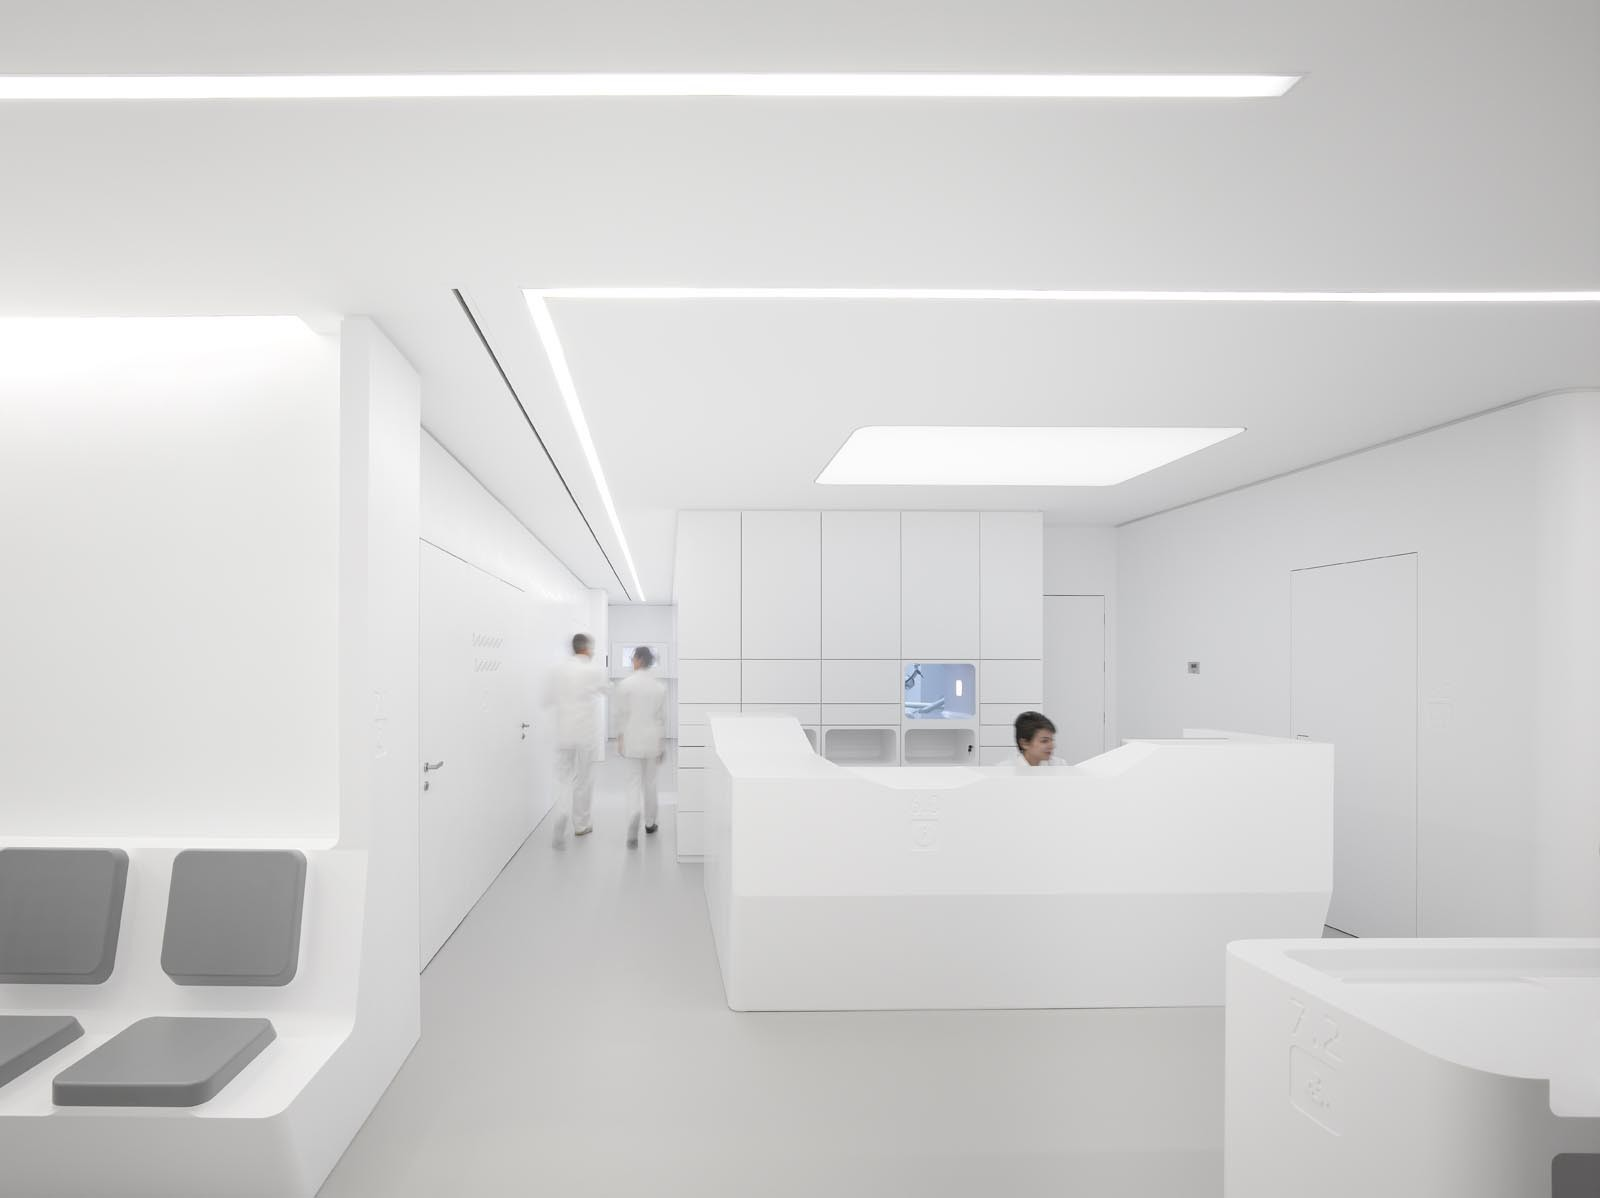 white space orthodontic clinic bureauhub architecture